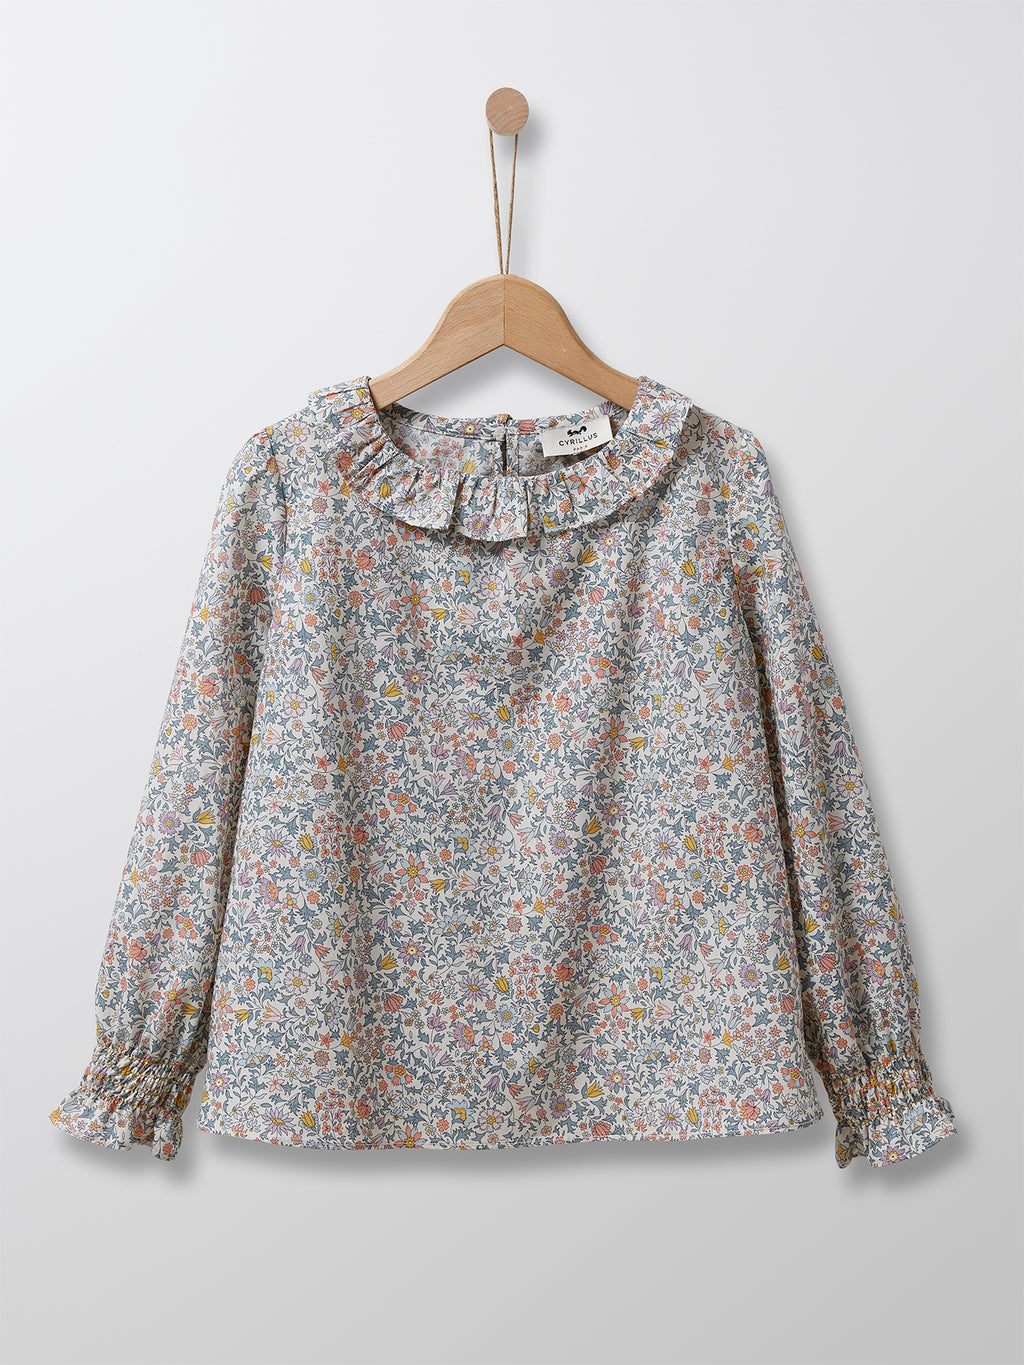 Cyrillus Paris | Girl's Liberty Blouse with Peter Pan Collar | 100% Cotton | Floral | 3Y, 4Y, 6Y